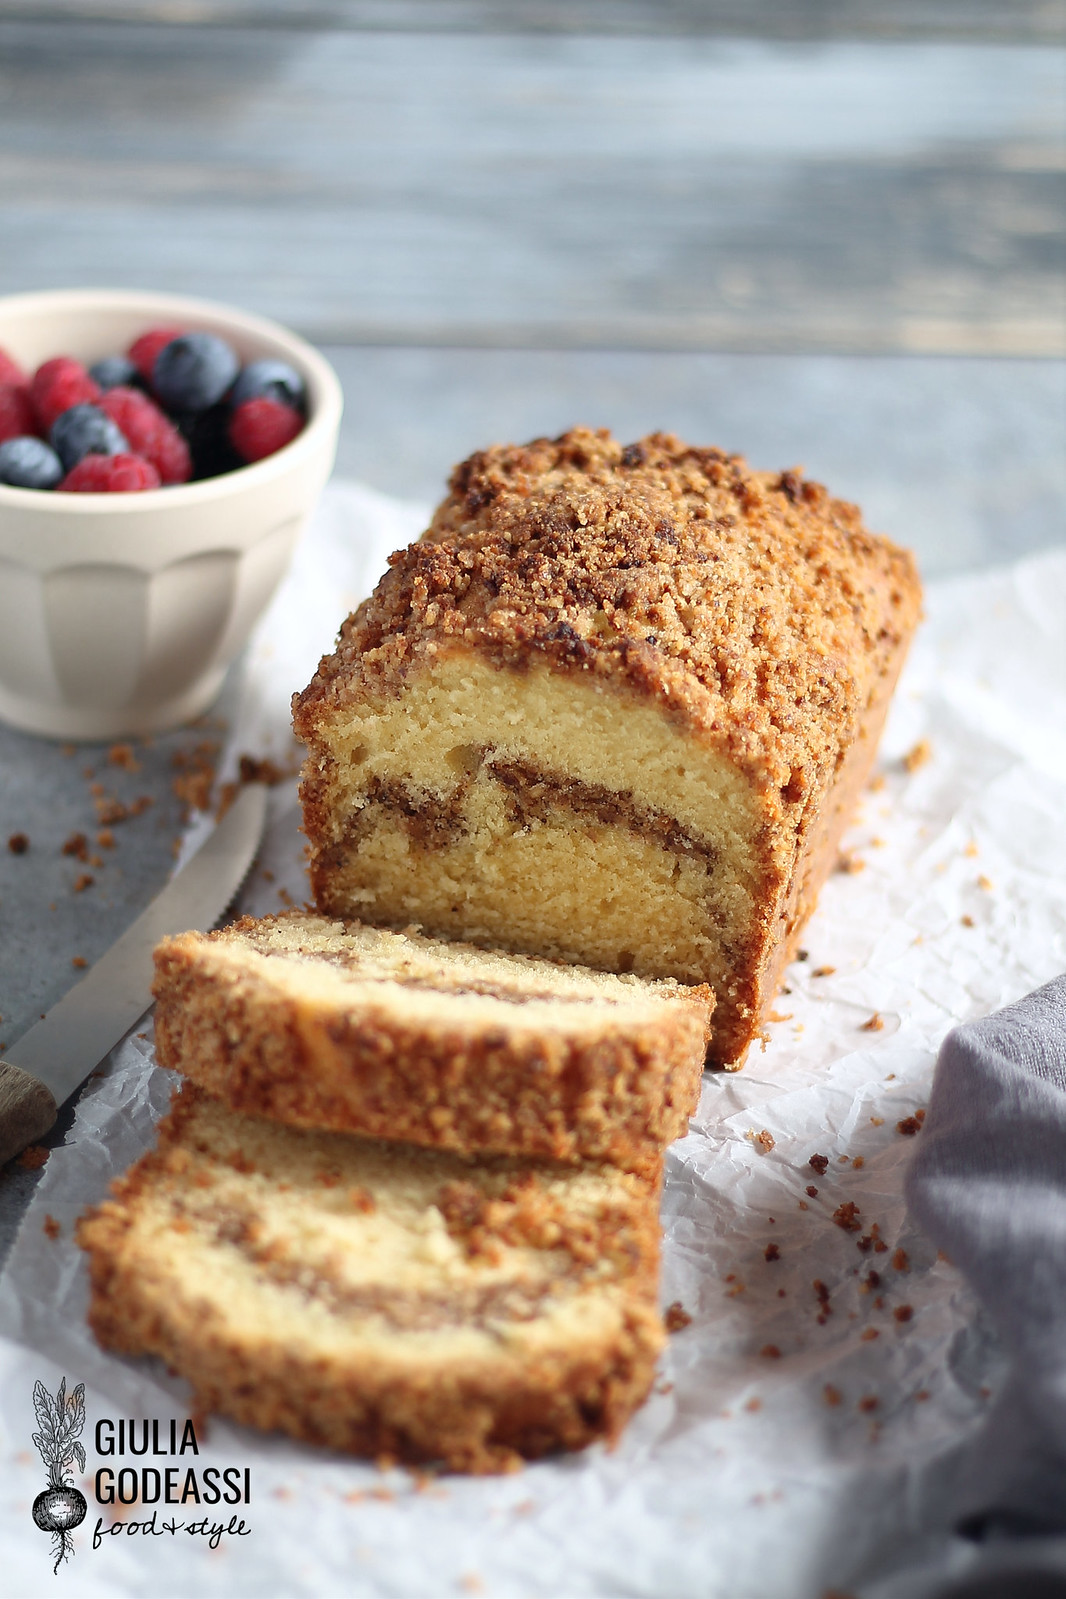 COFFEE CAKE ALLE NOCI E CANNELLA